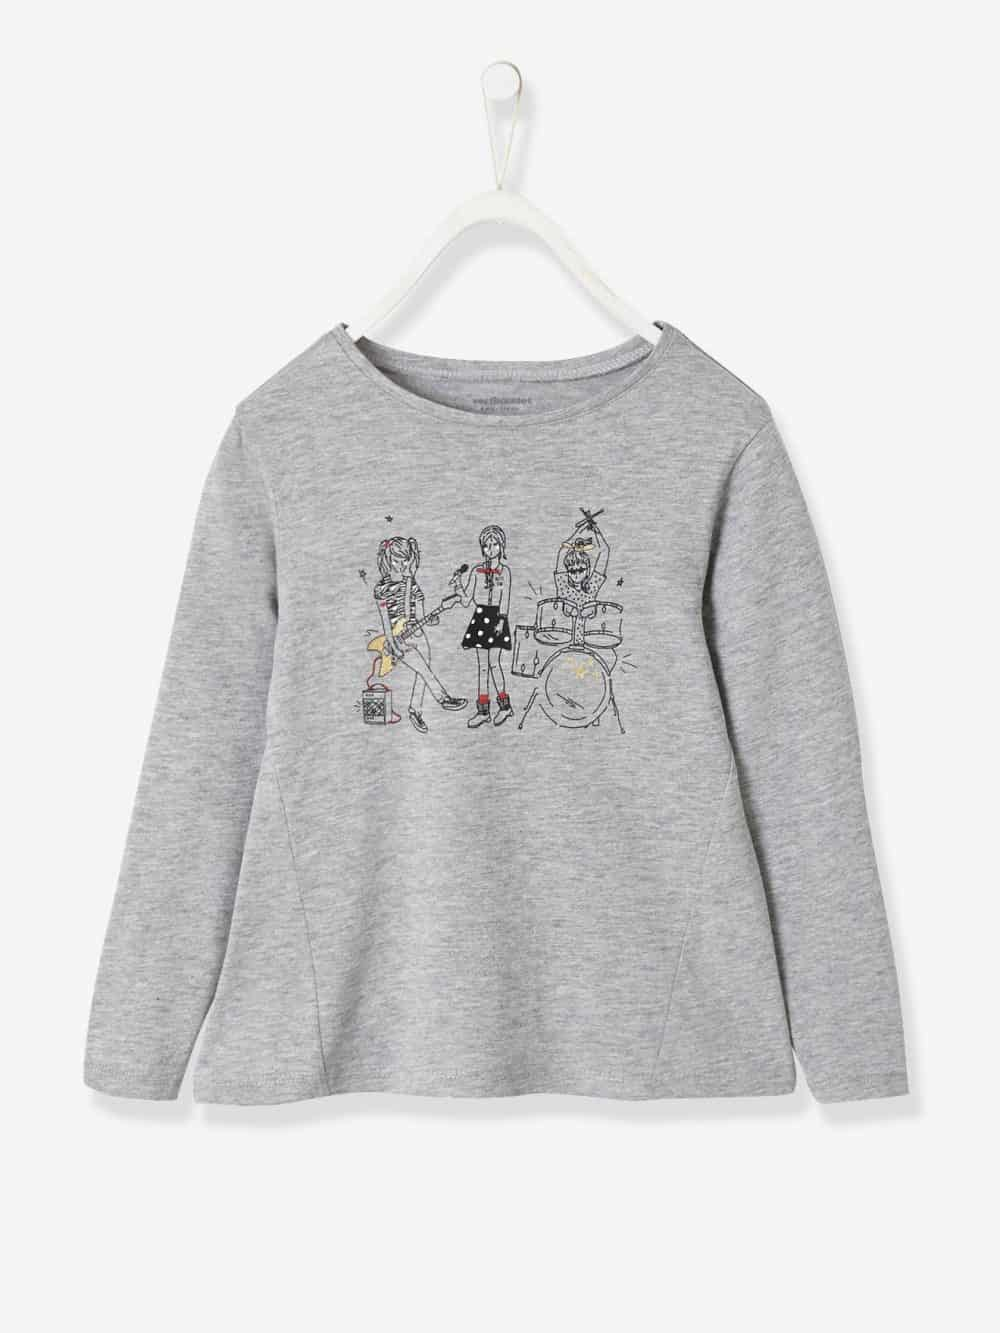 Top with Rock & Chic Motif + Iridescent Details, for Girls grey medium mixed color